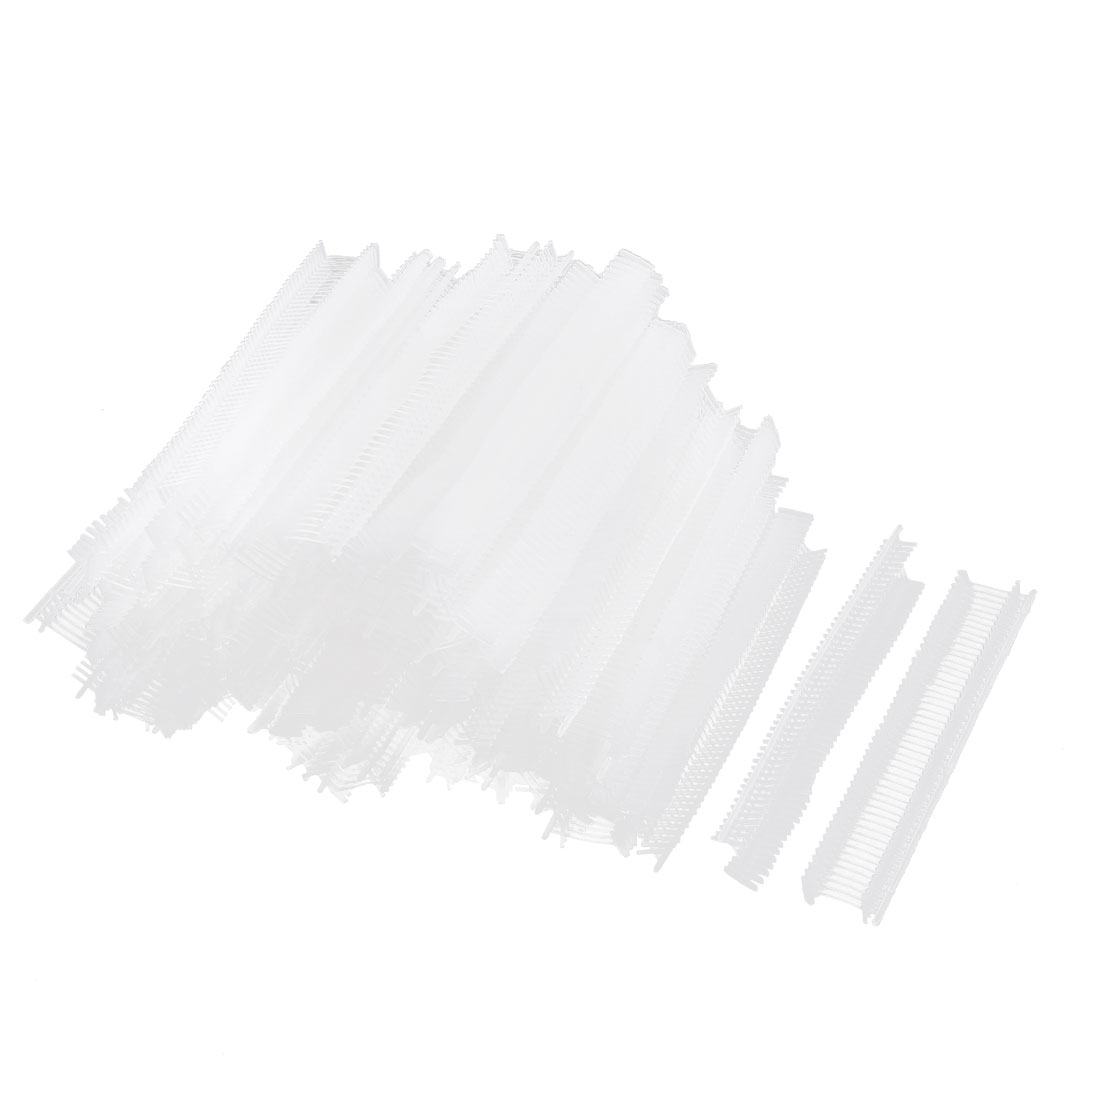 Polypropylene Tag Pins Barbs Fastener Clear White 10mm 5000 Pcs for Tagging Gun